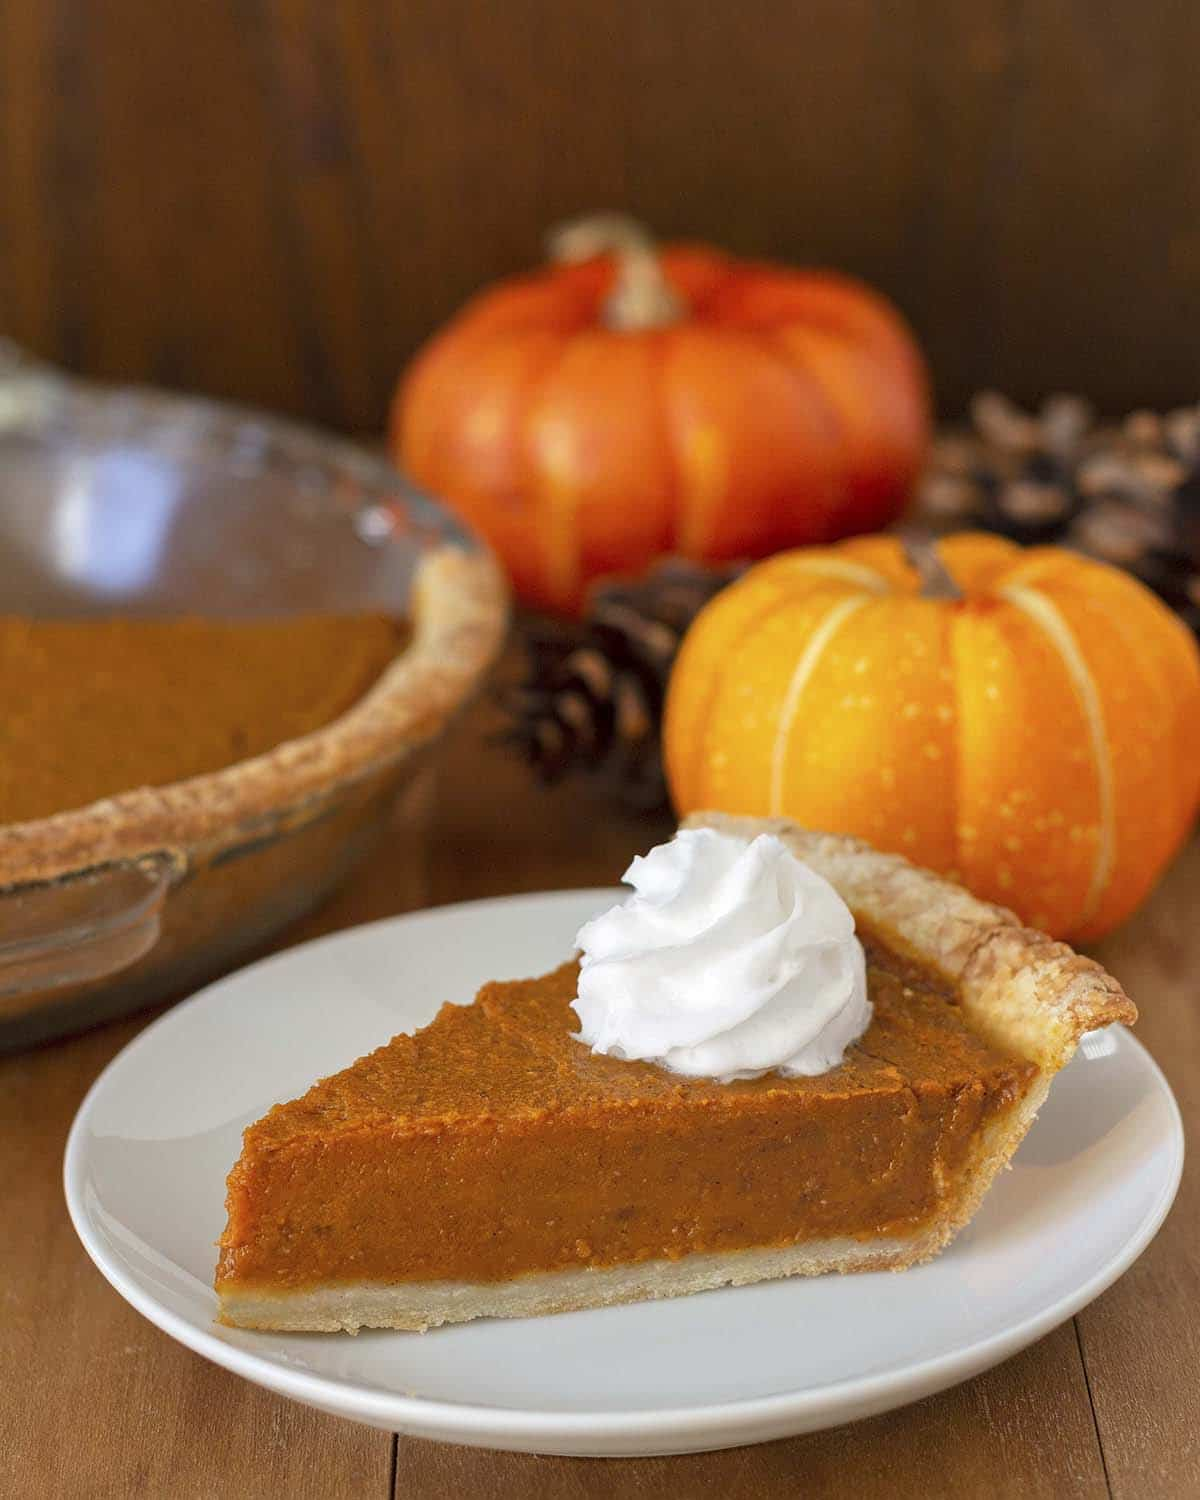 A slice of vegan pumpkin pie with two mini pumpkins in the background.